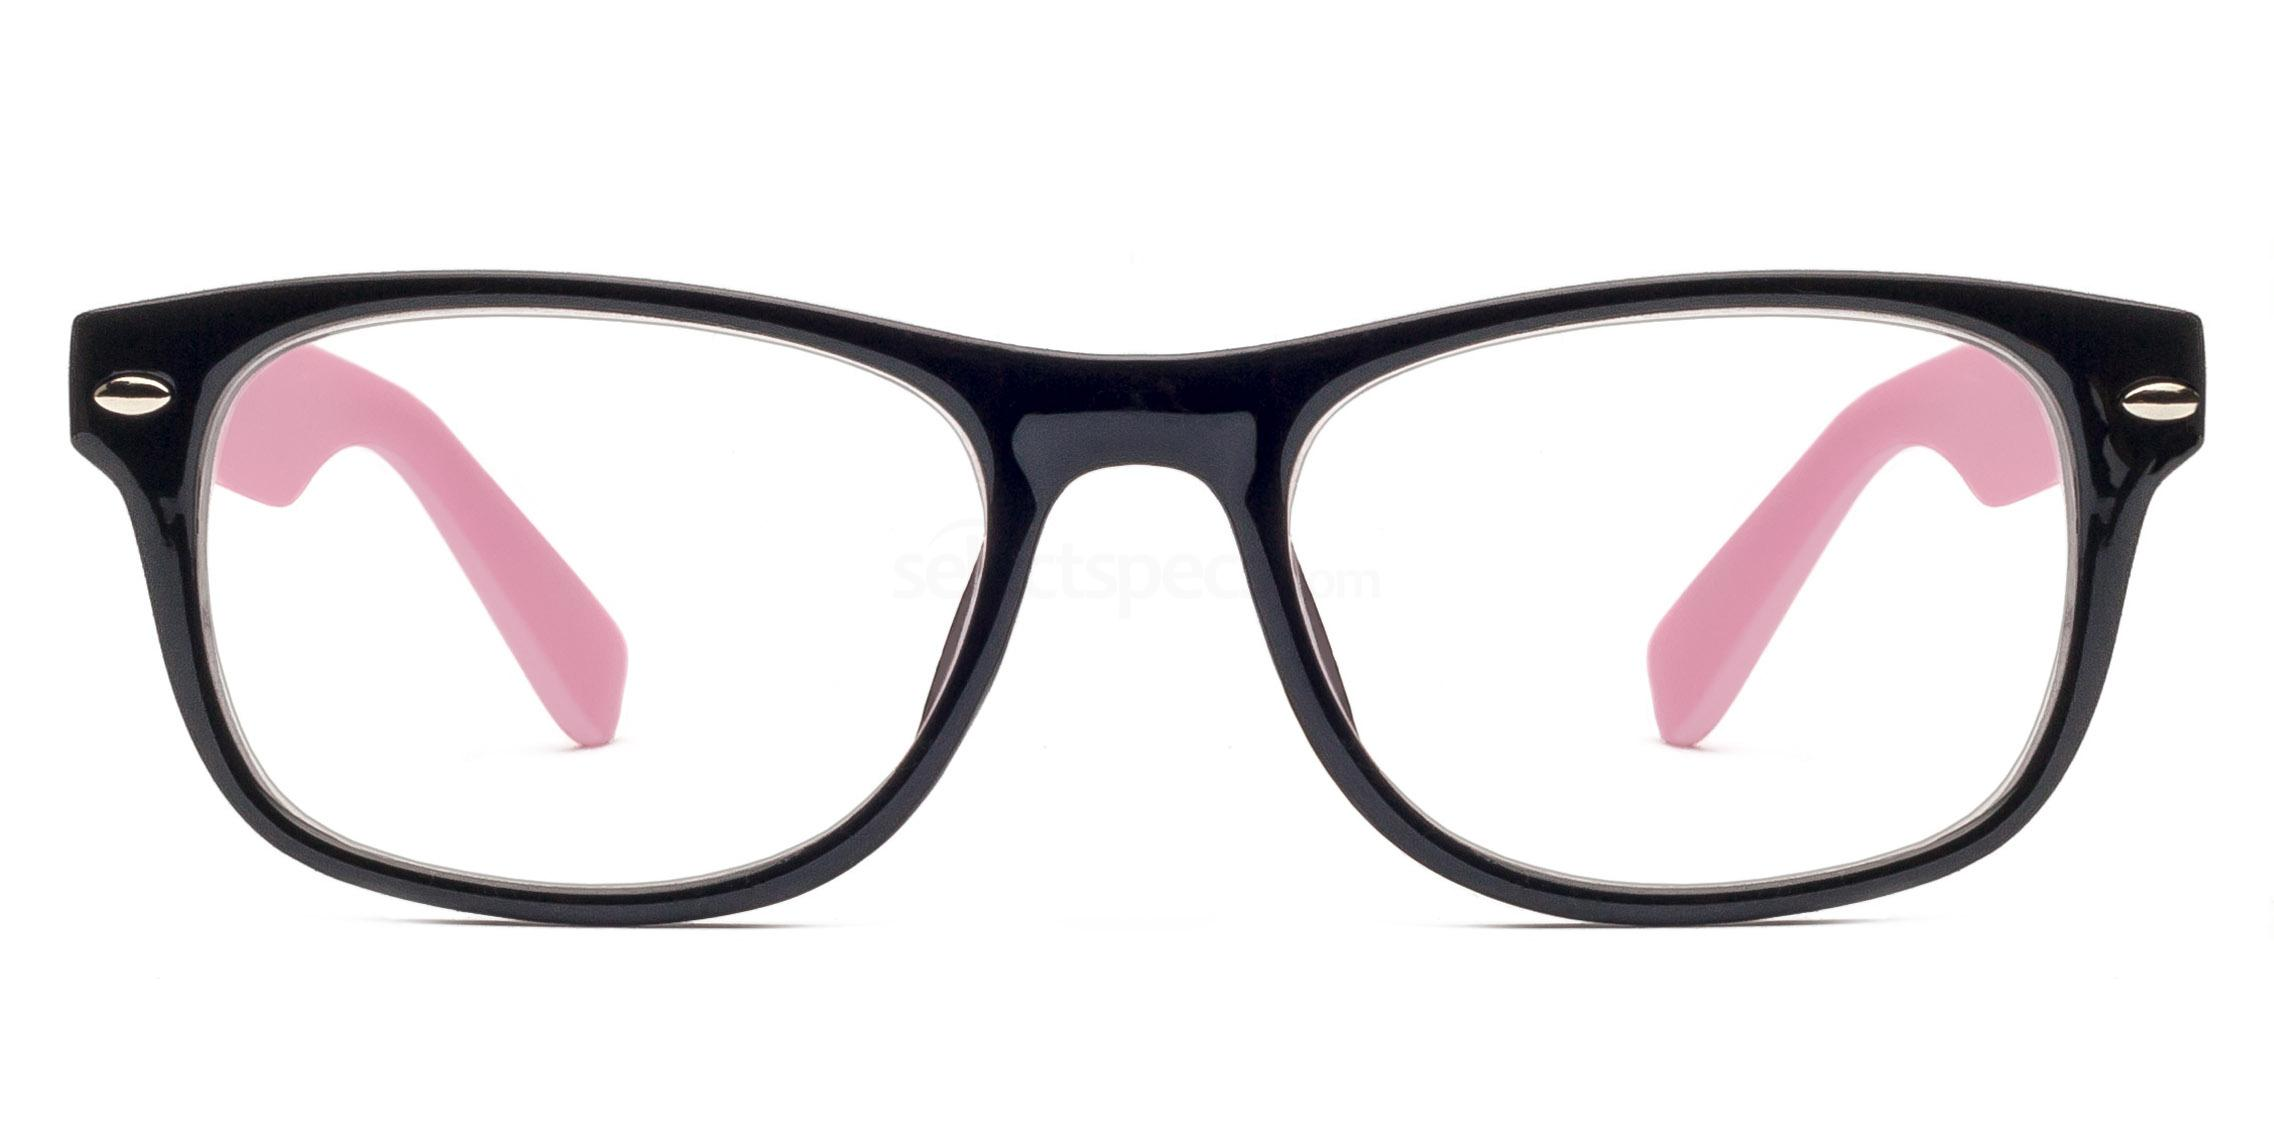 C86 P2383 - Black and Pink Glasses, Savannah